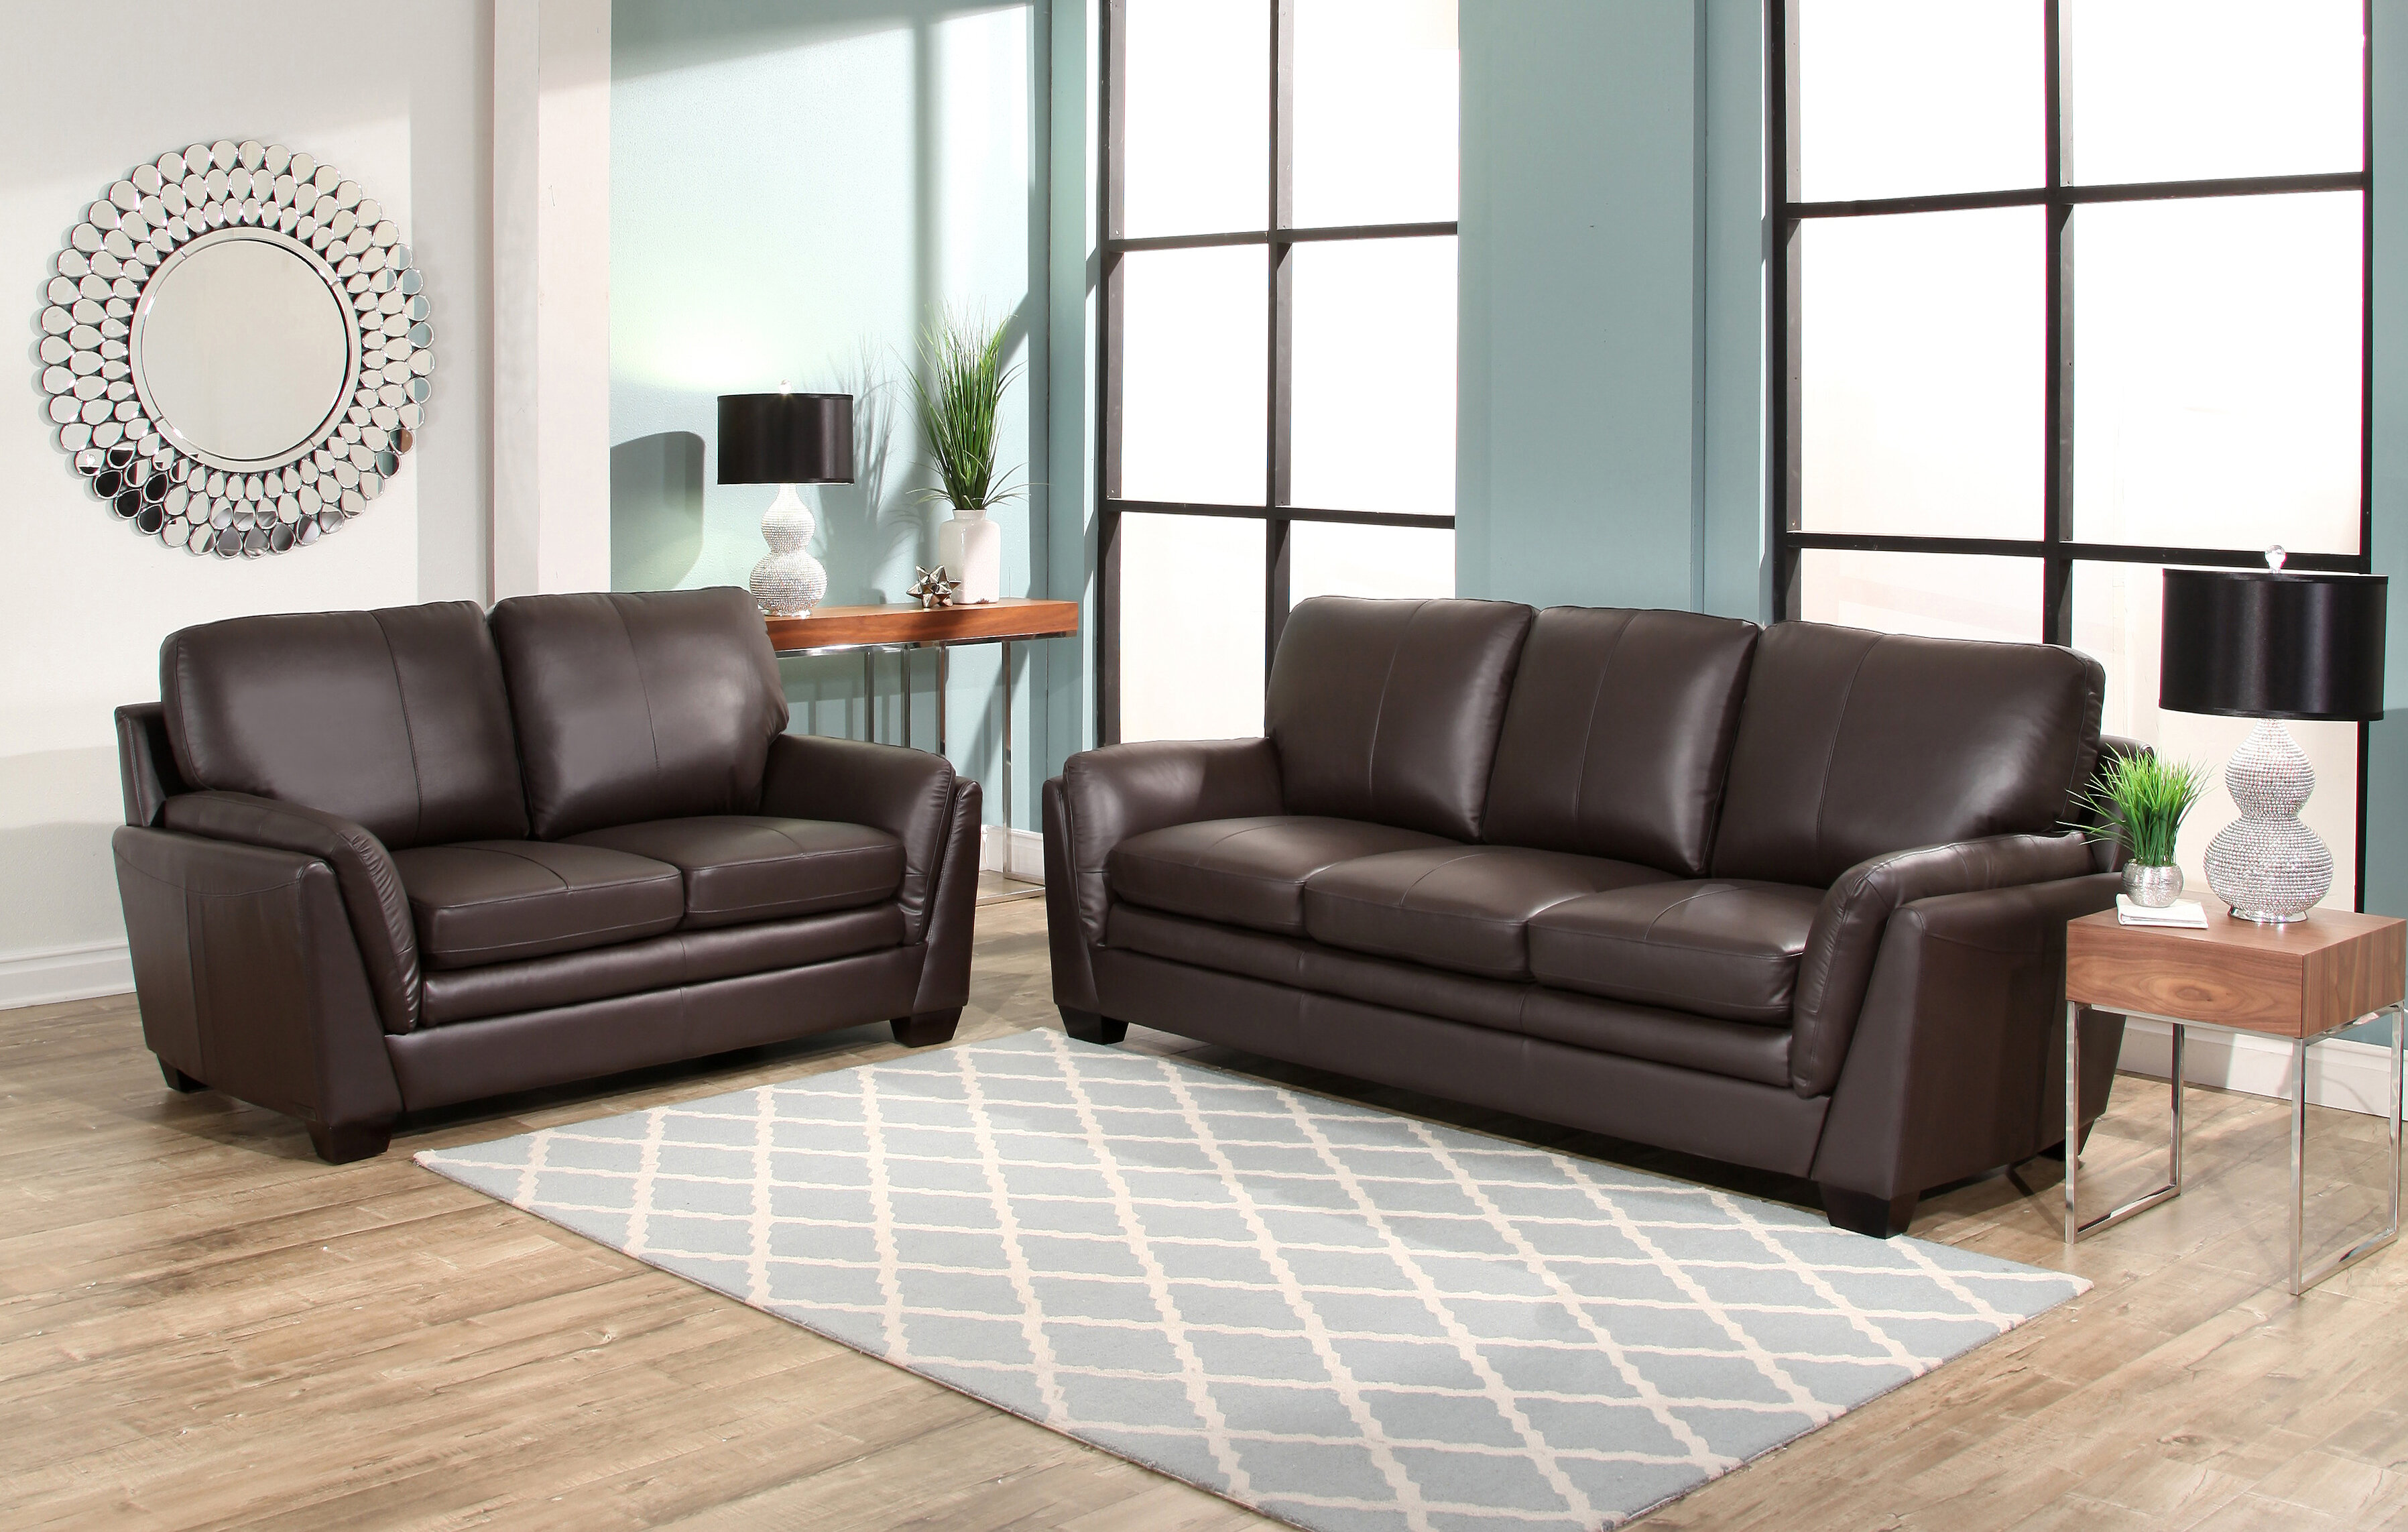 Darby home co whitstran 2 piece leather living room set wayfair ca